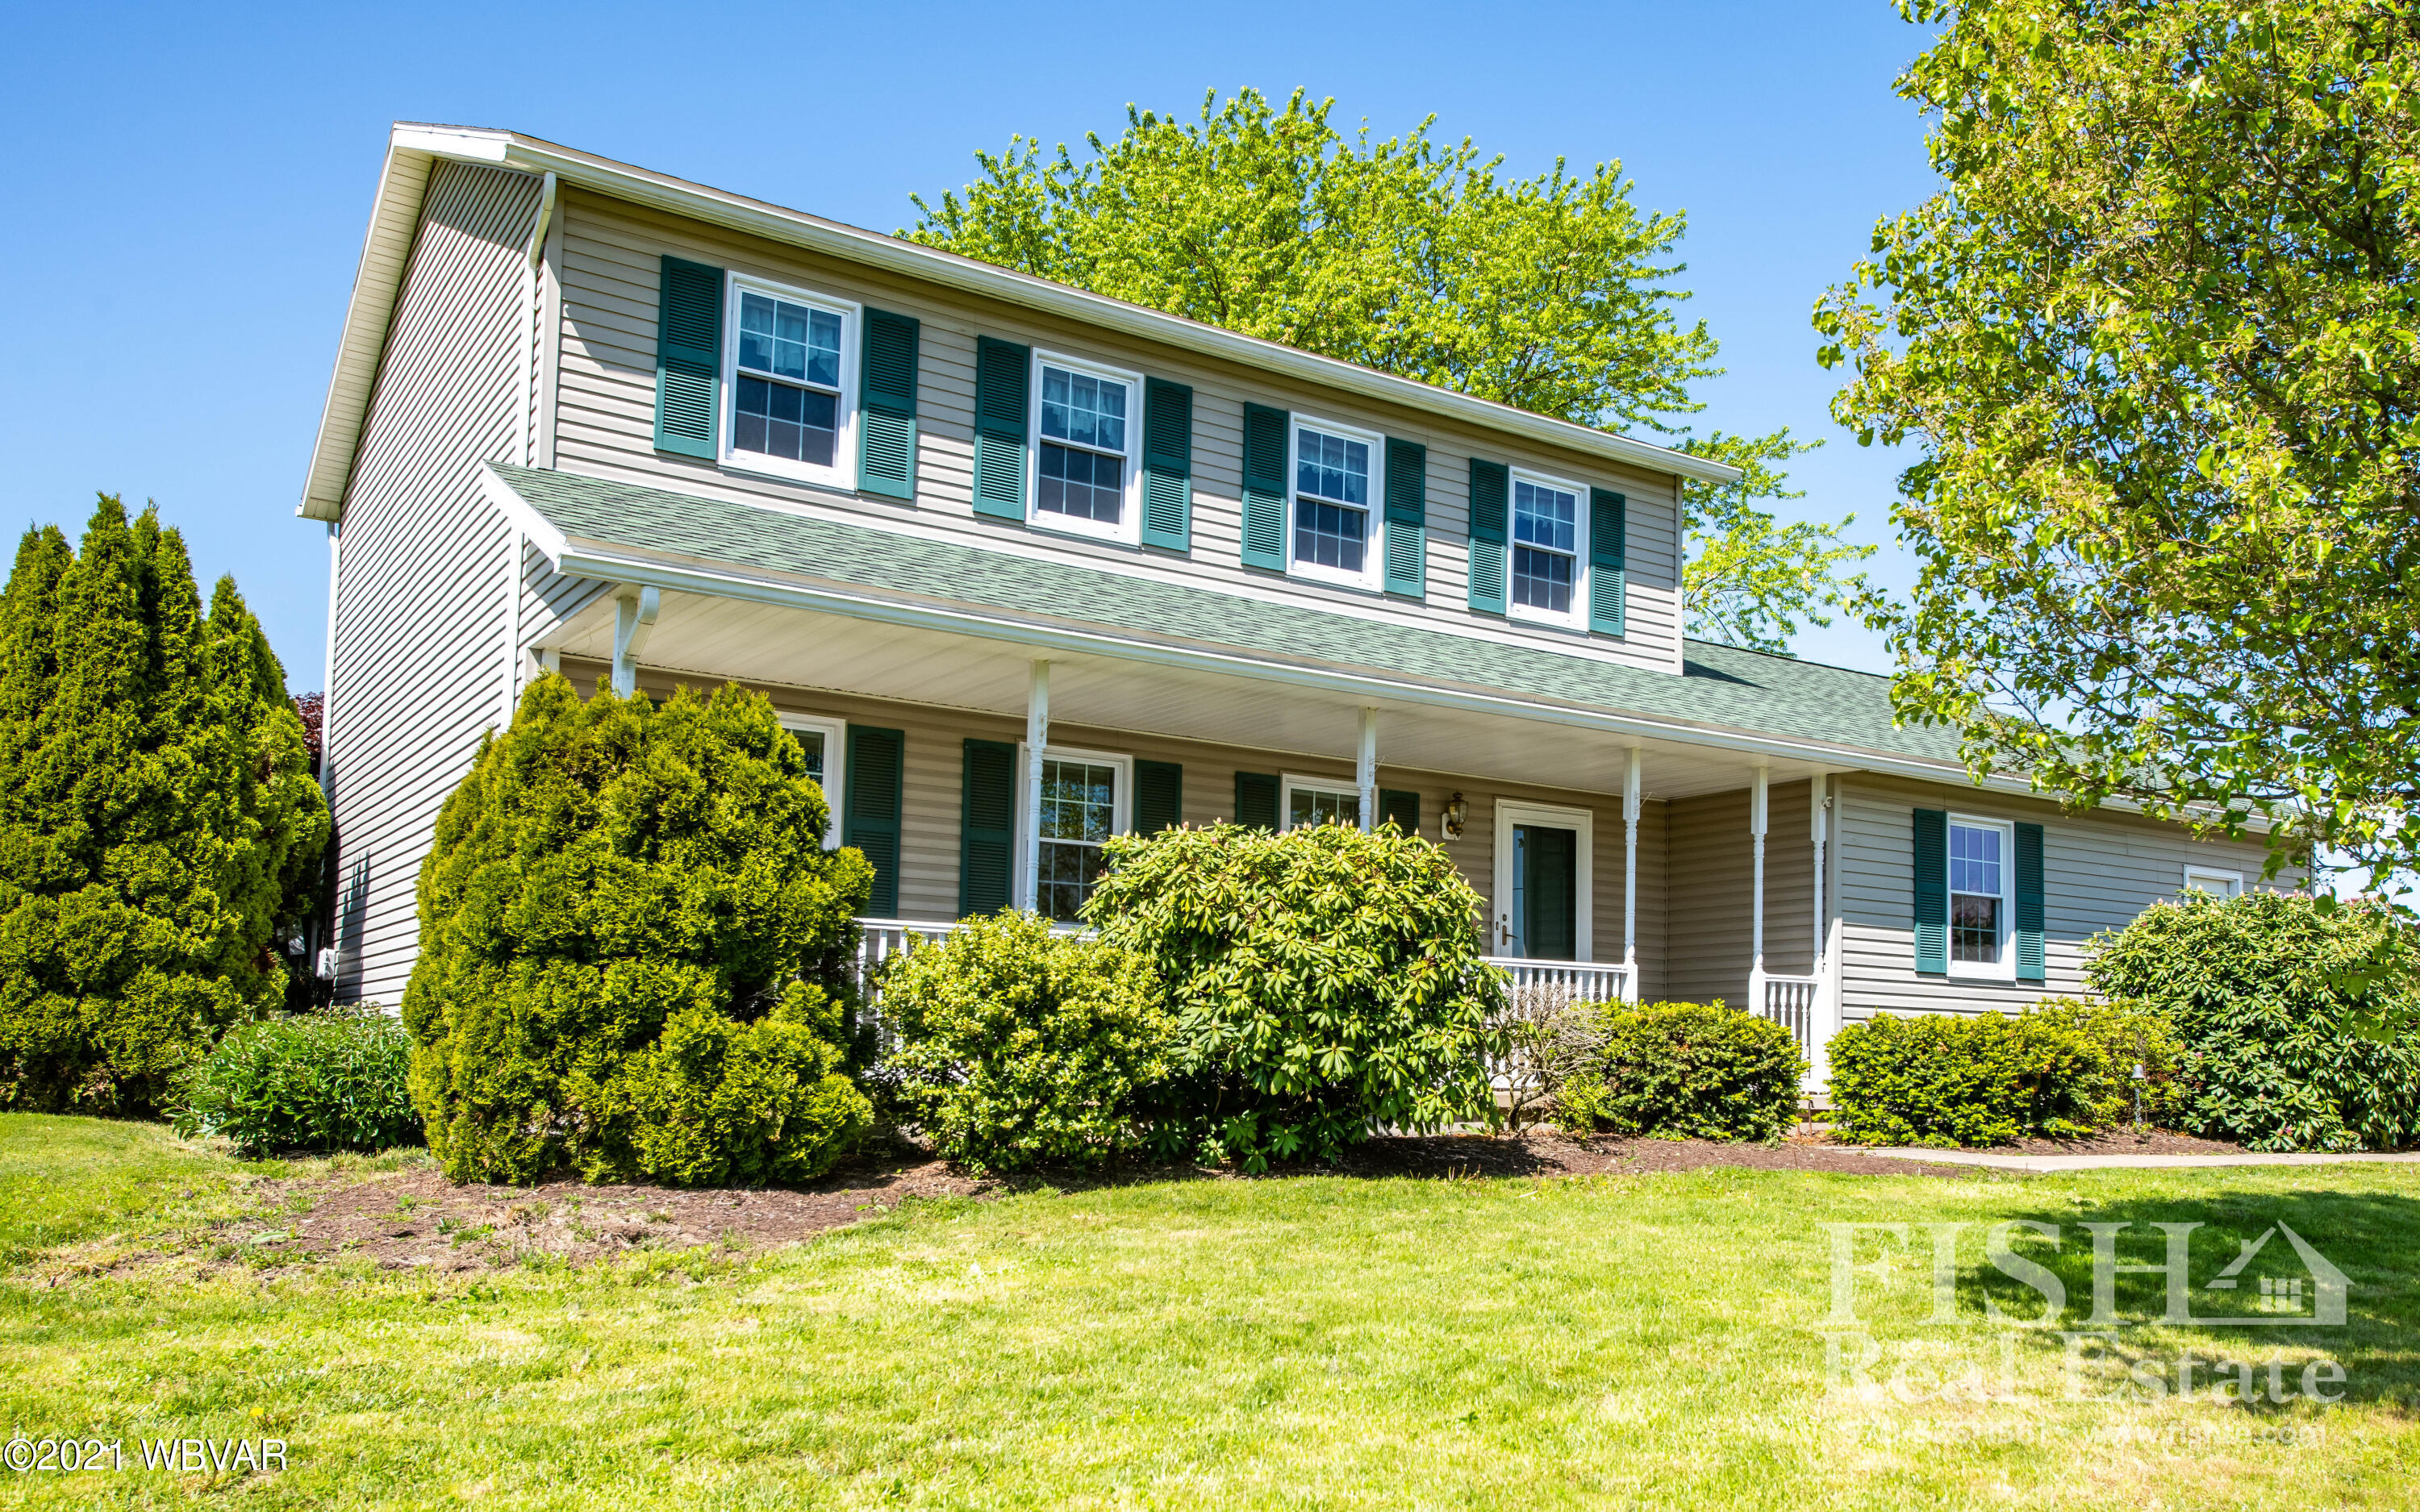 560 SHAFFER LANE, Jersey Shore, PA 17740, 3 Bedrooms Bedrooms, ,4 BathroomsBathrooms,Residential,For sale,SHAFFER,WB-92530